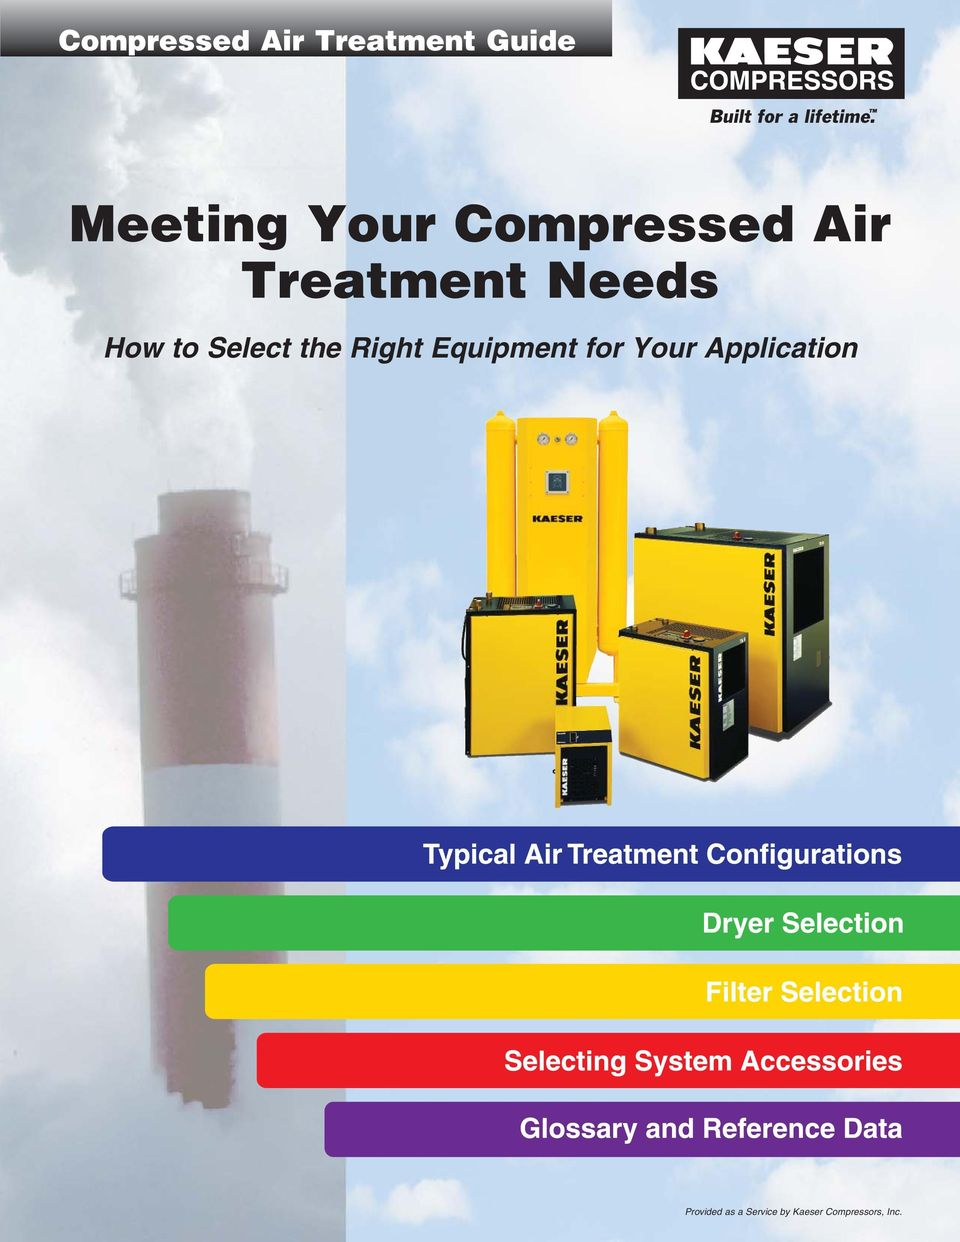 the Right Equipment for Your Application